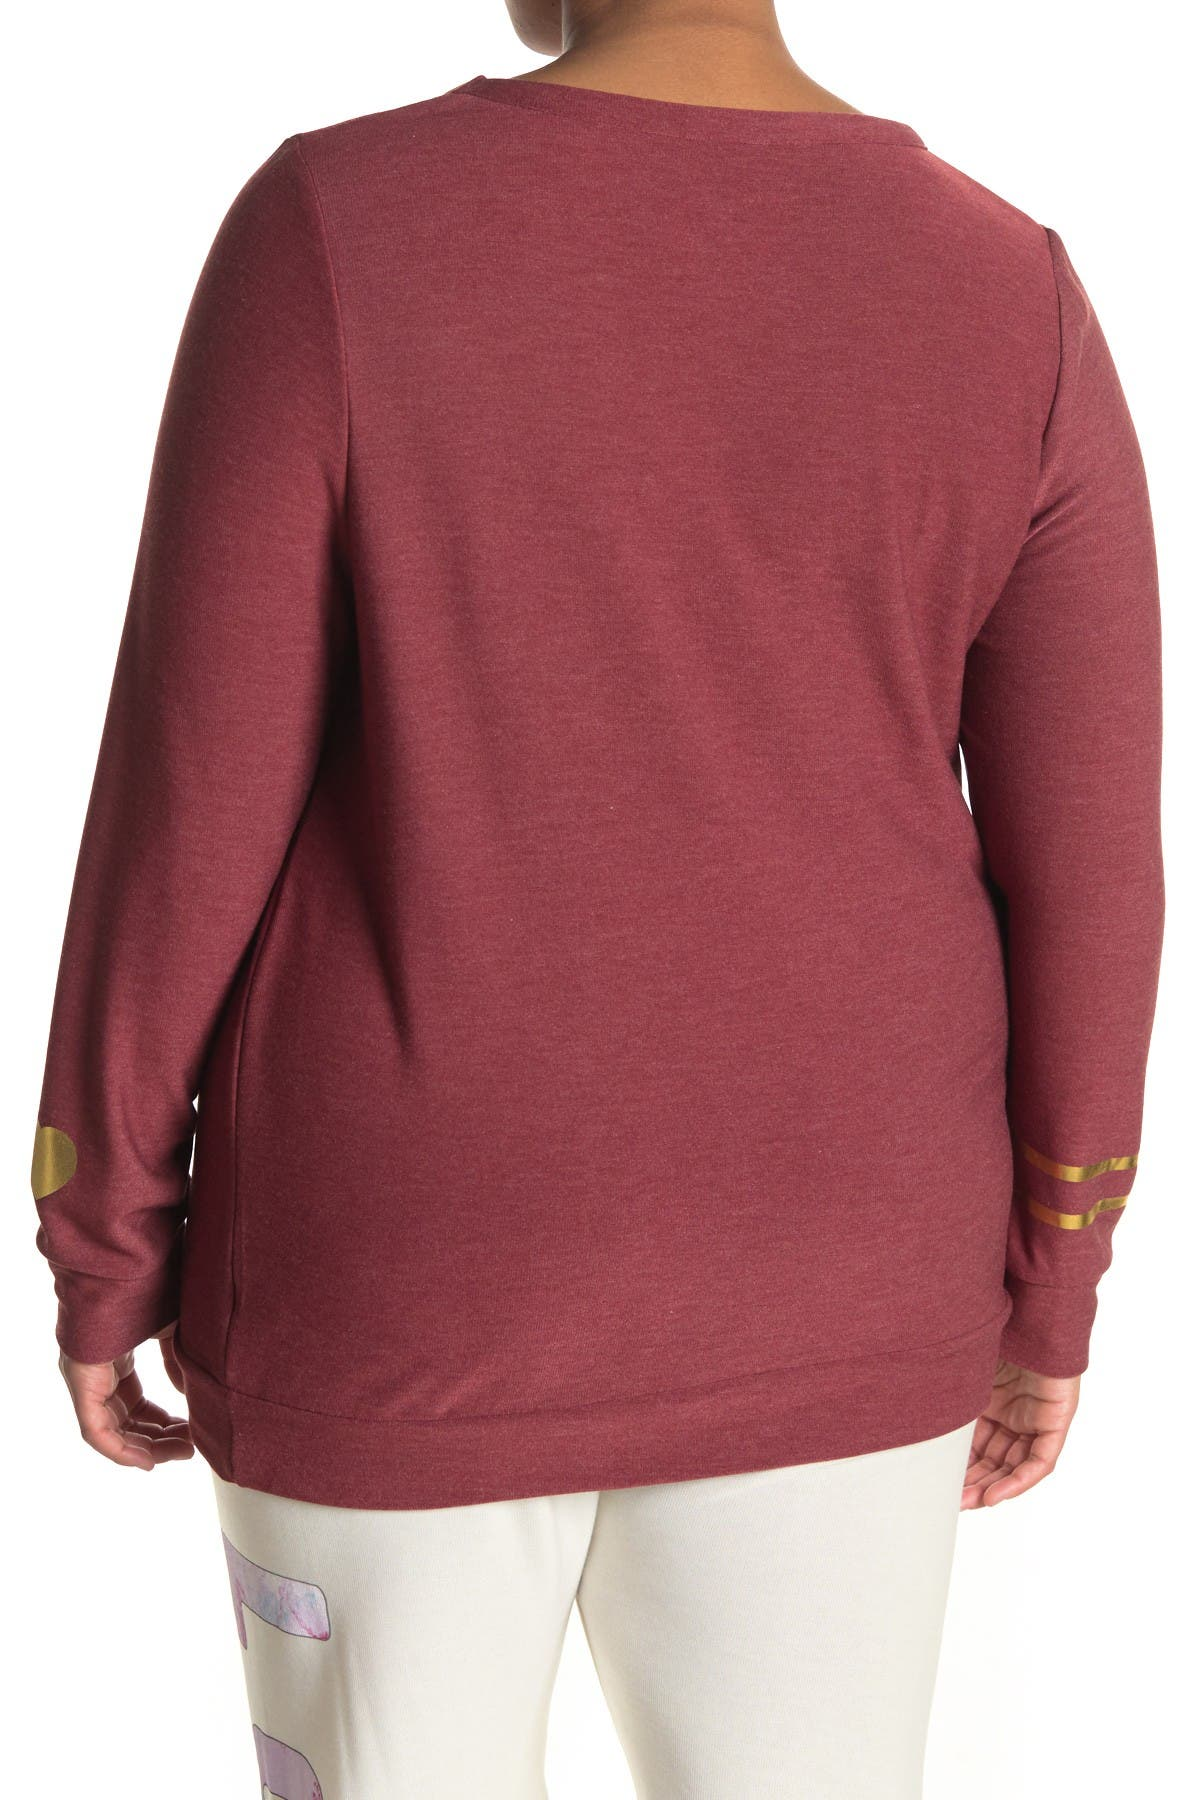 Image of Chaser Gold Heart Print Cozy Pullover Sweater